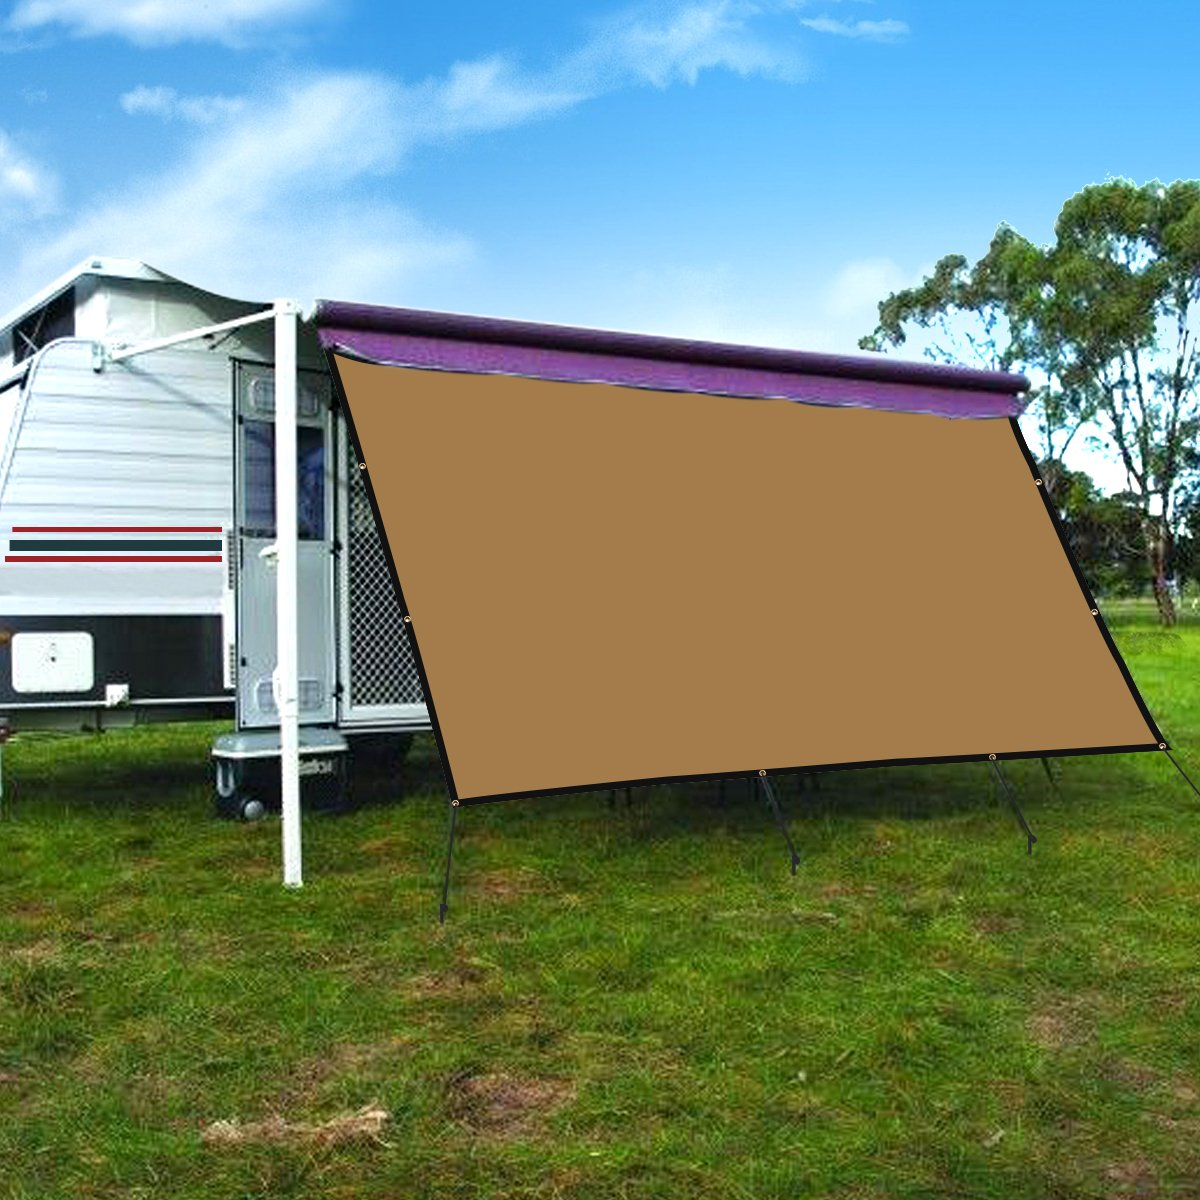 CAMWINGS RV Awning Privacy Screen Shade Panel Kit Sunblock Shade Drop 8 x 16ft, Coffee by CAMWINGS